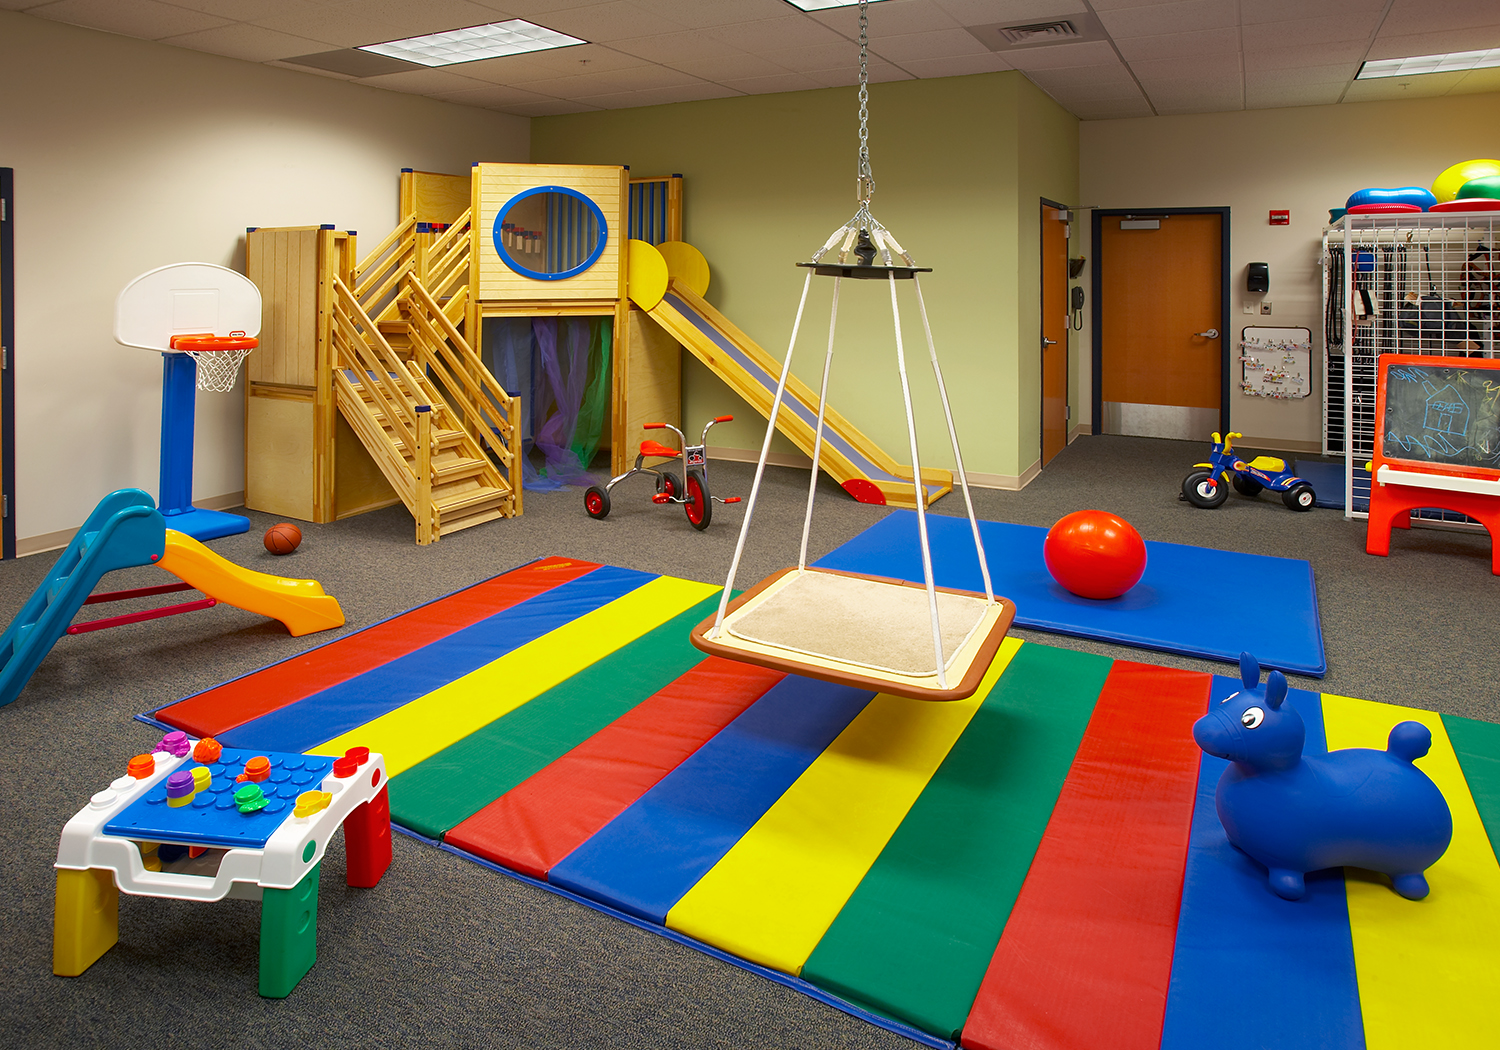 Kids rehab area.